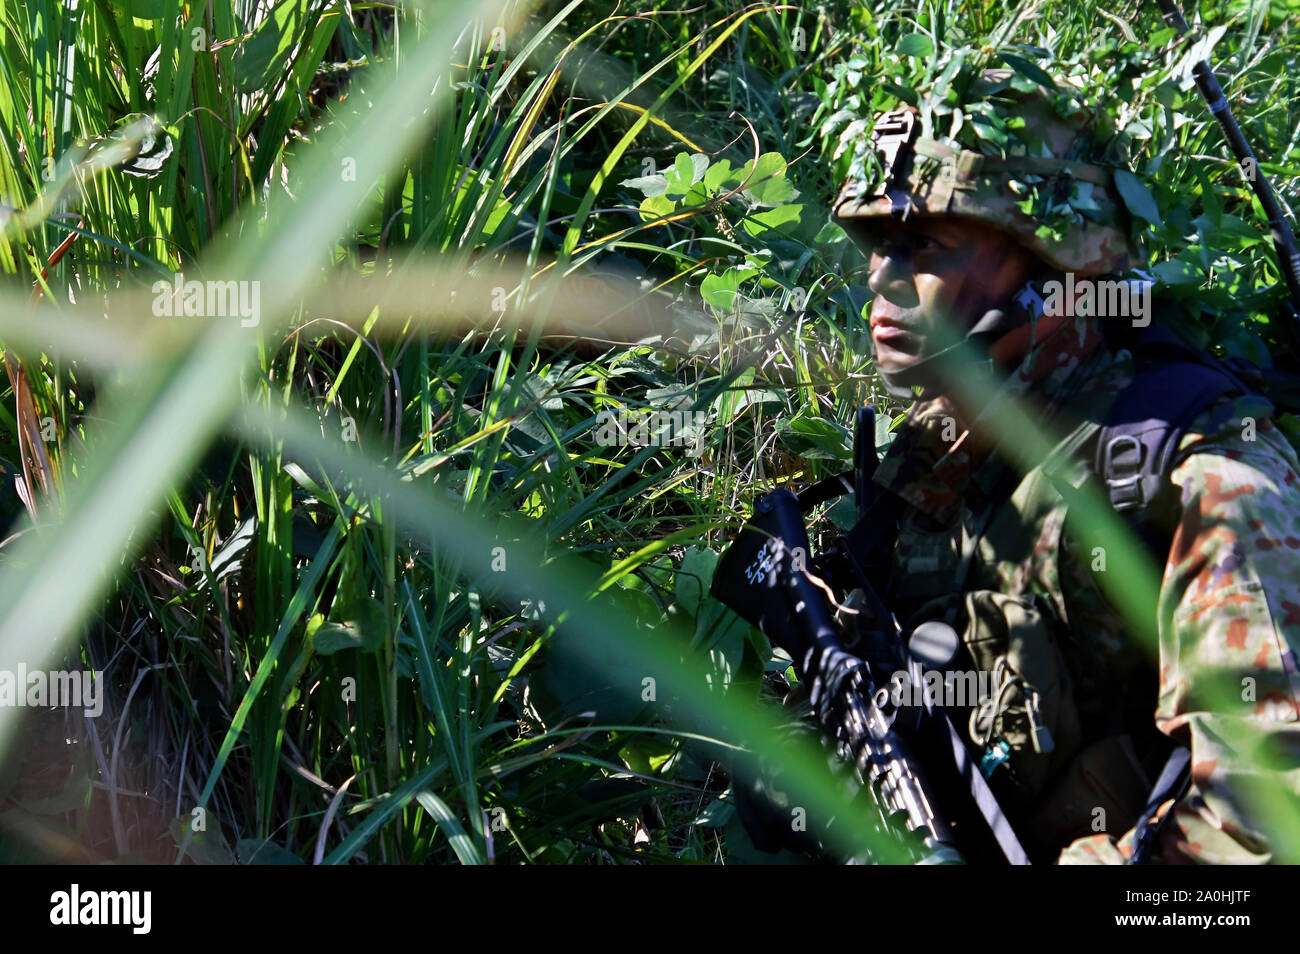 Yamato, Japan. 19th Sep, 2019. Soldier of the Japan Ground Self-Defense Force in the joint military training 'Orient Shield 2019' of the USA and Japan on the Oyanohara troop-pad. Yamato, 19.09.2019 | usage worldwide Credit: dpa/Alamy Live News Stock Photo